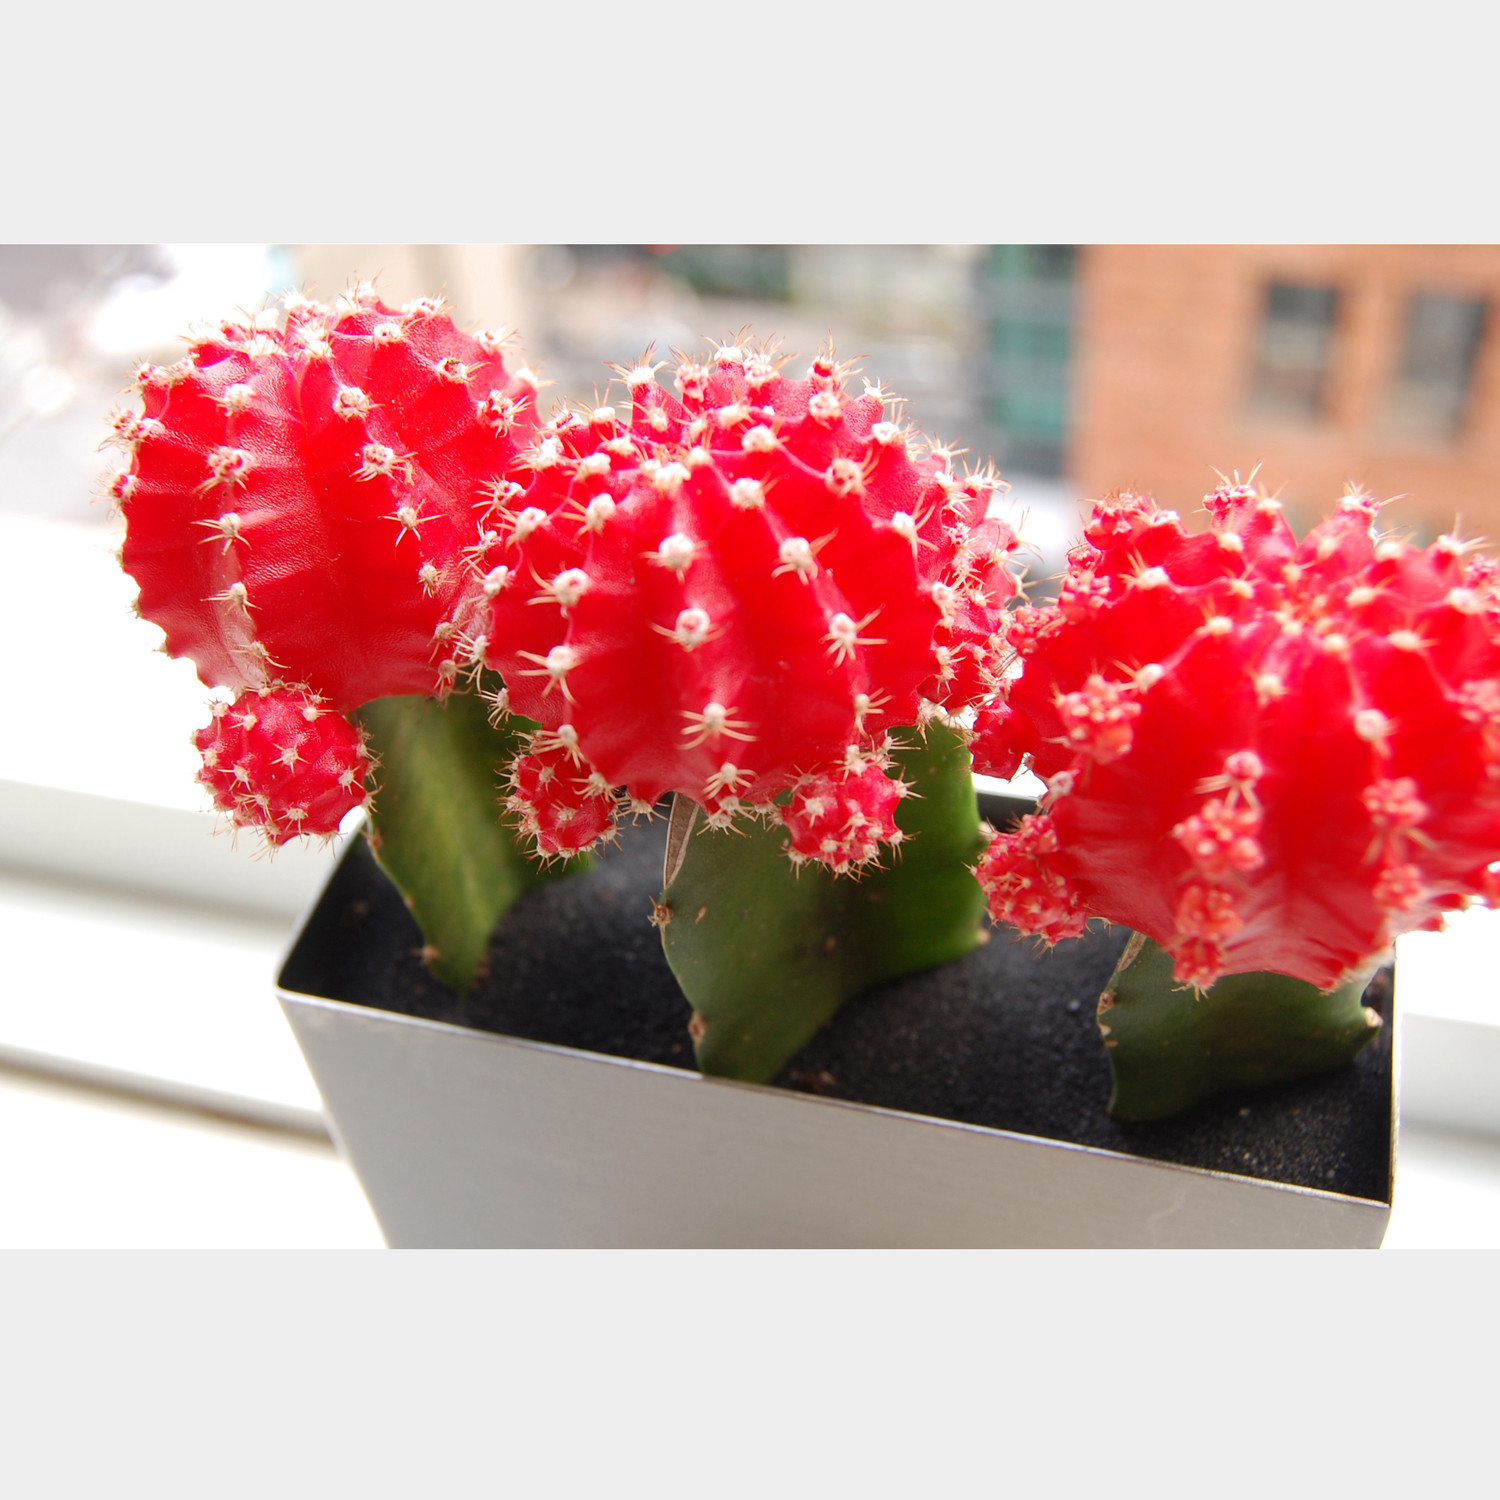 Lushmodern Red Moon Cactus Stainless Planter Lushmodern Touch